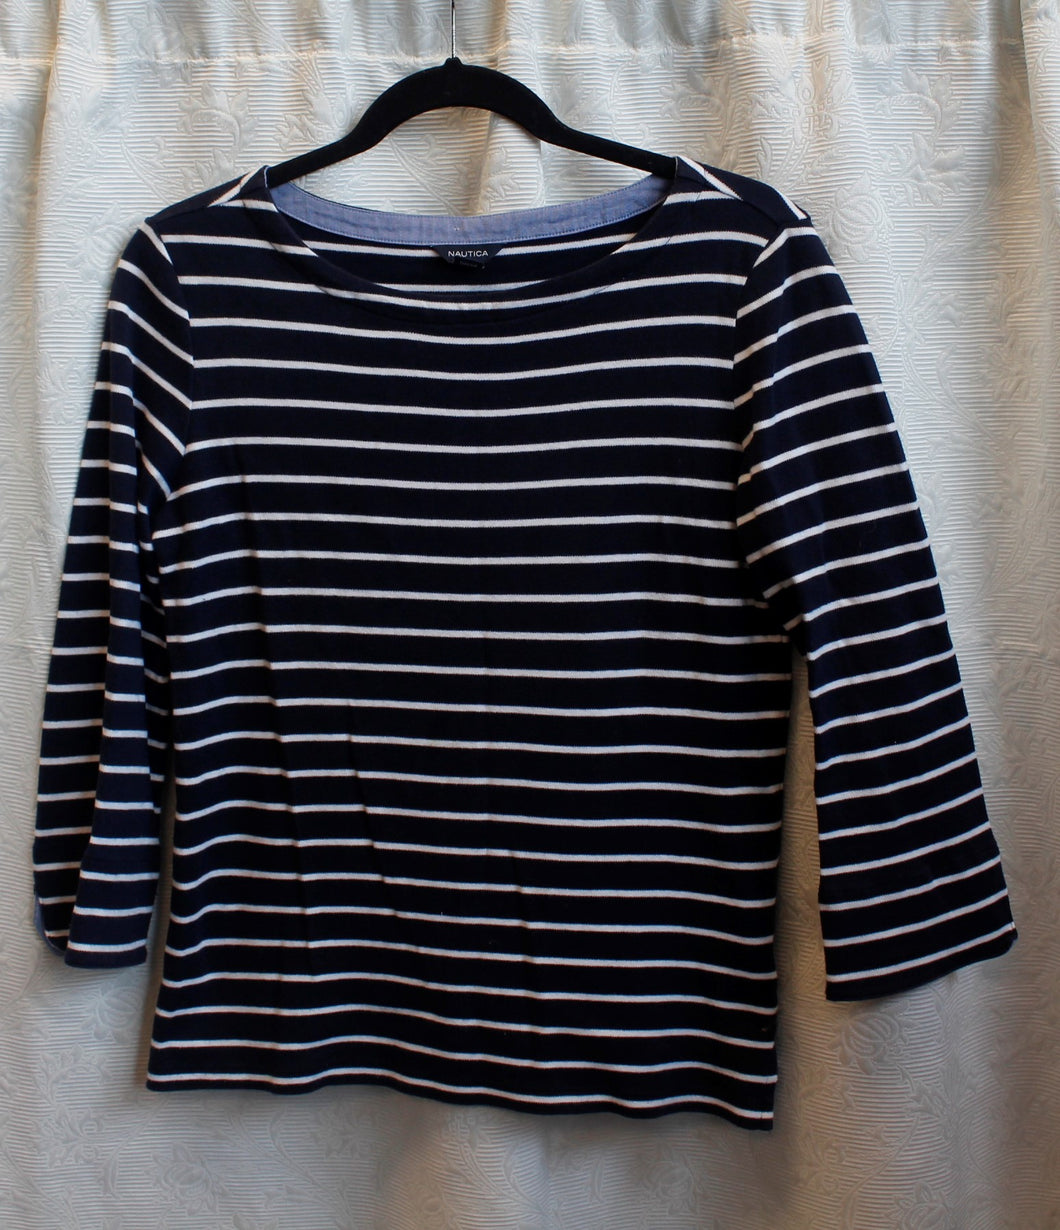 Women's Navy/White Stripes Tshirt                      S                                   1/13C